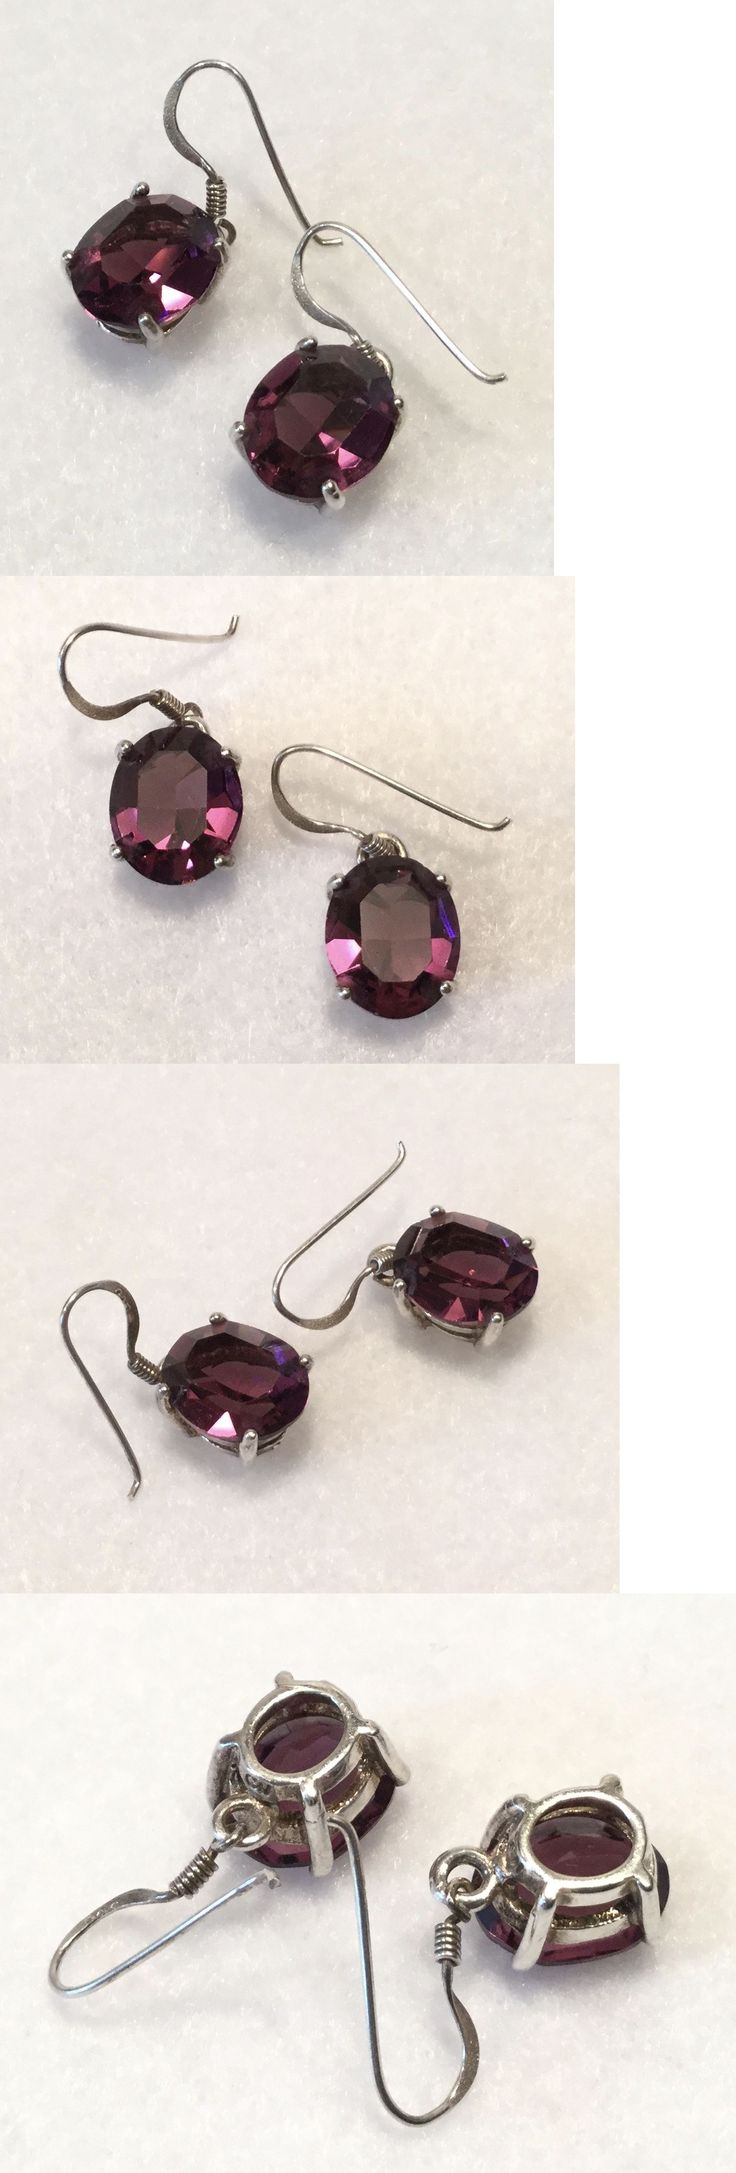 Earrings 165041: Retro Qvc 925 Sterling And Dark Amethyst Oval Solitaire Dangle-Drop Earrings BUY IT NOW ONLY: $49.99